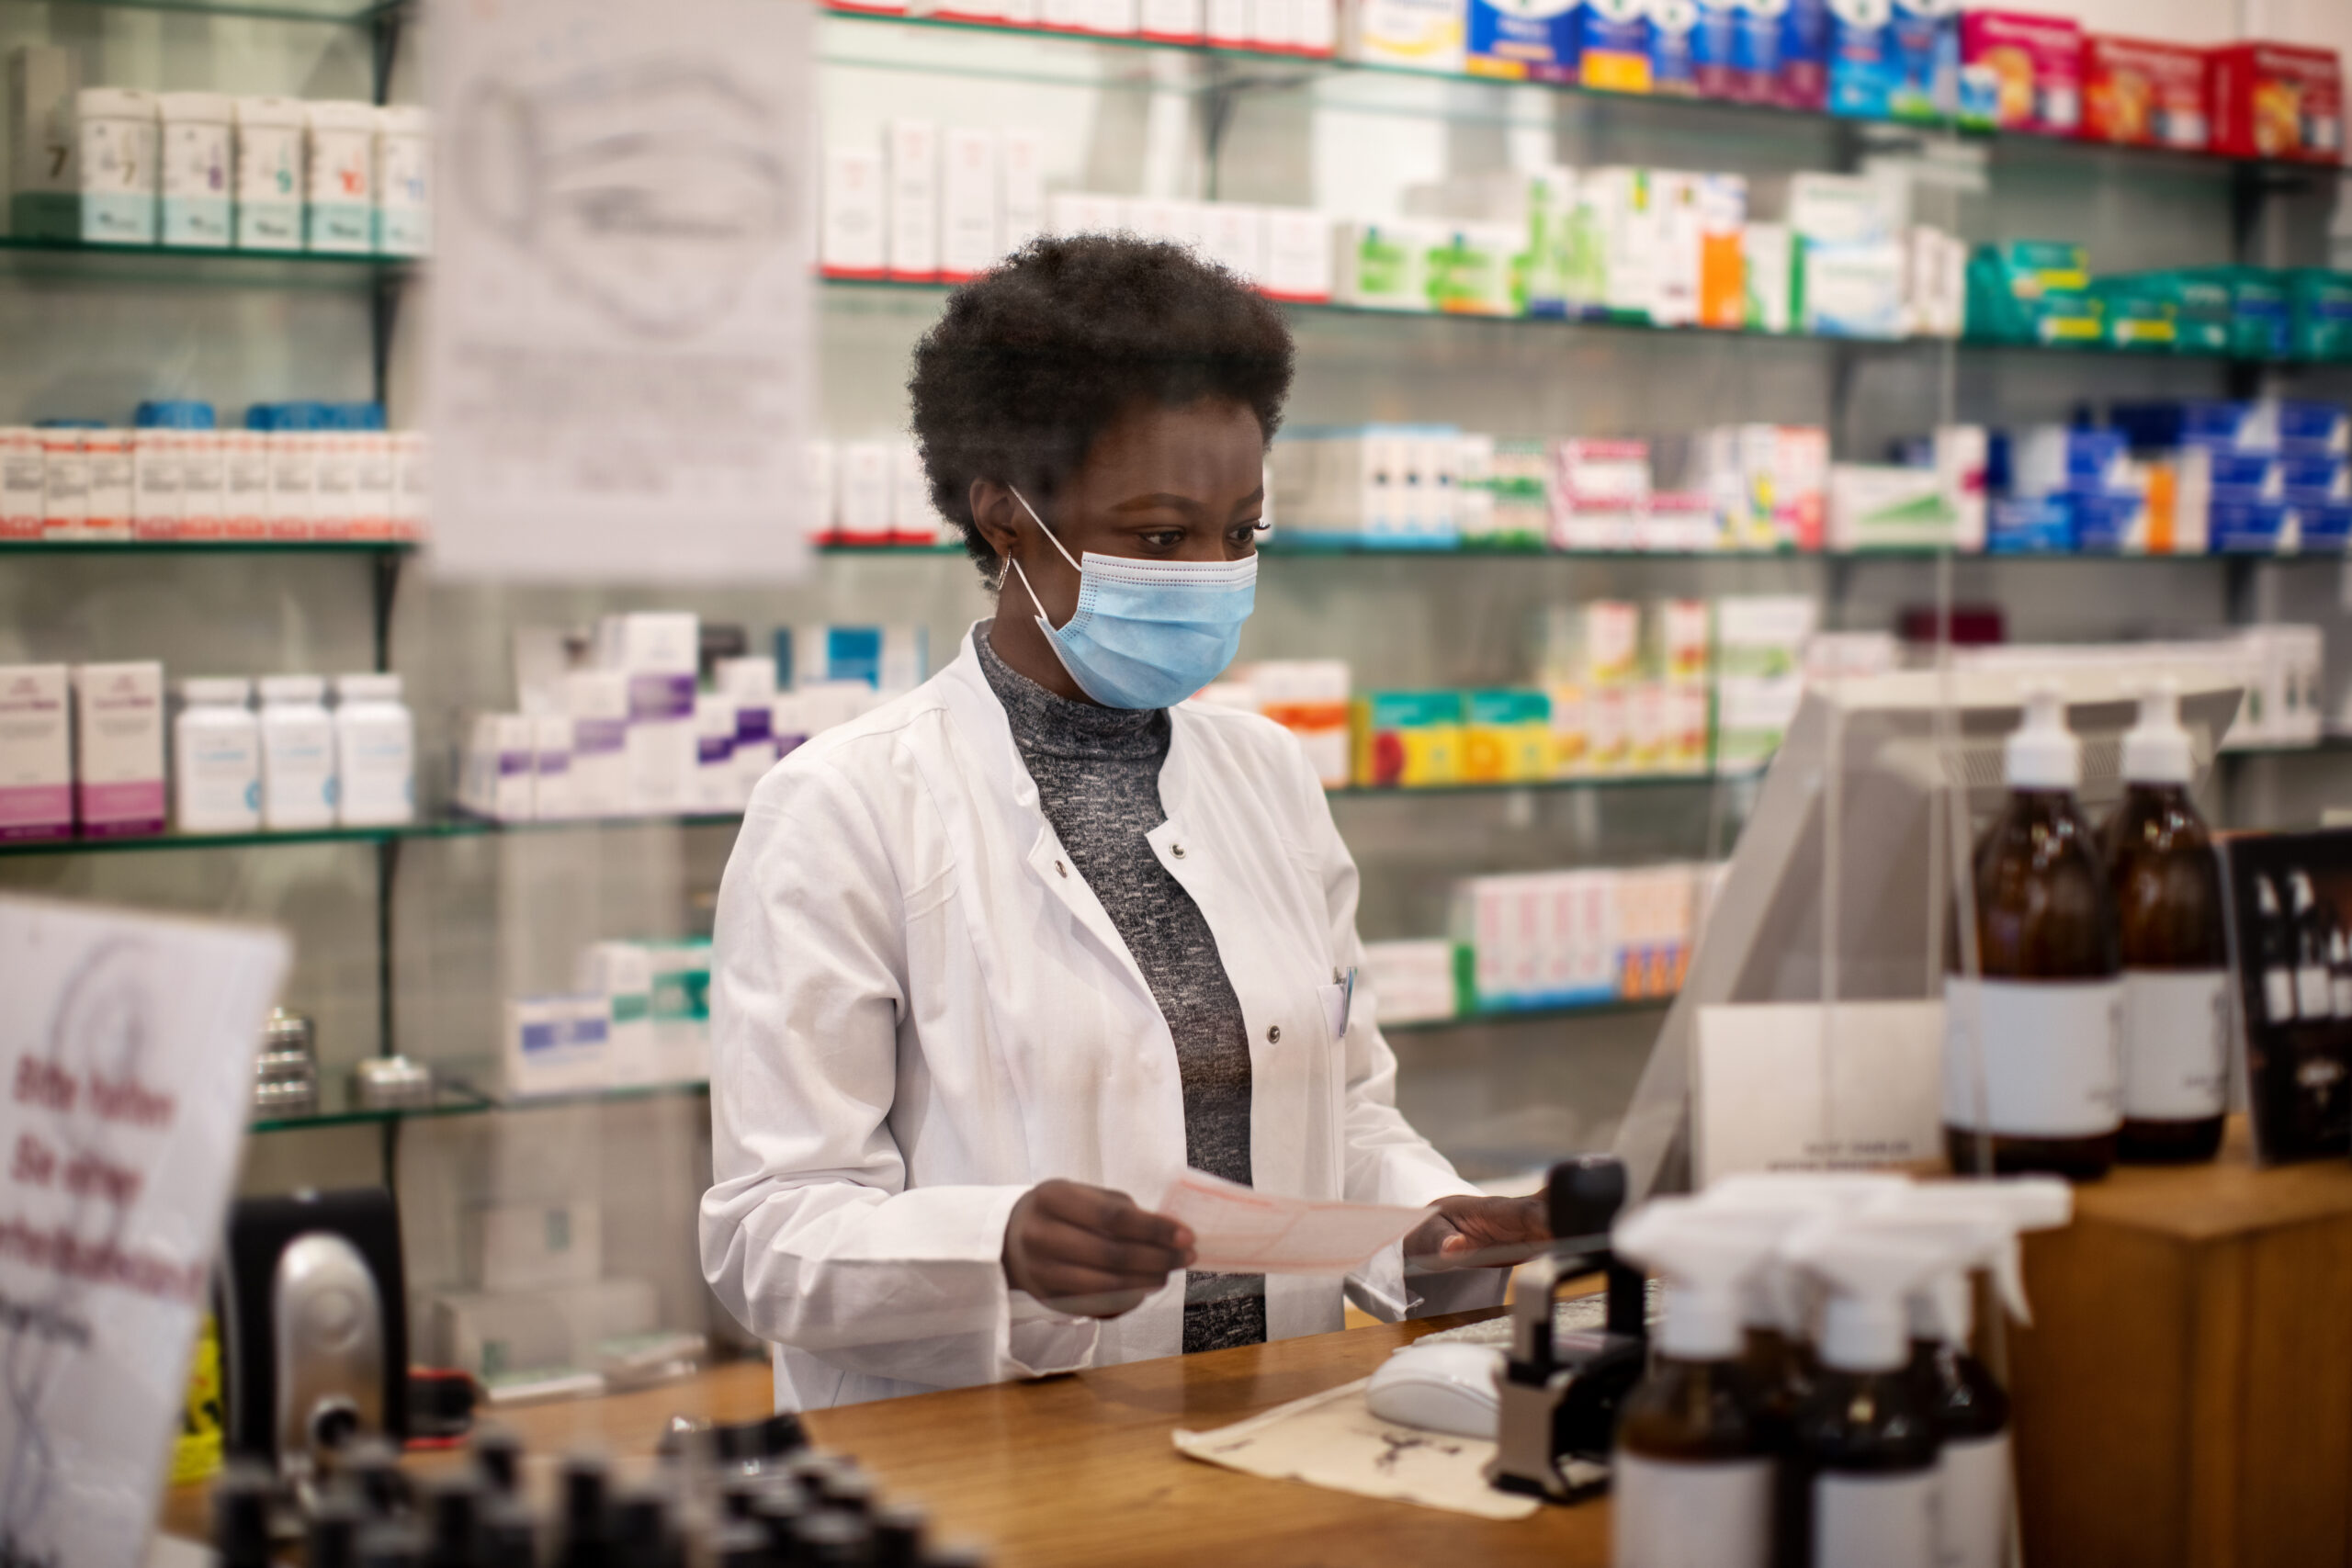 Woman pharmacist with face mask working in a drug store